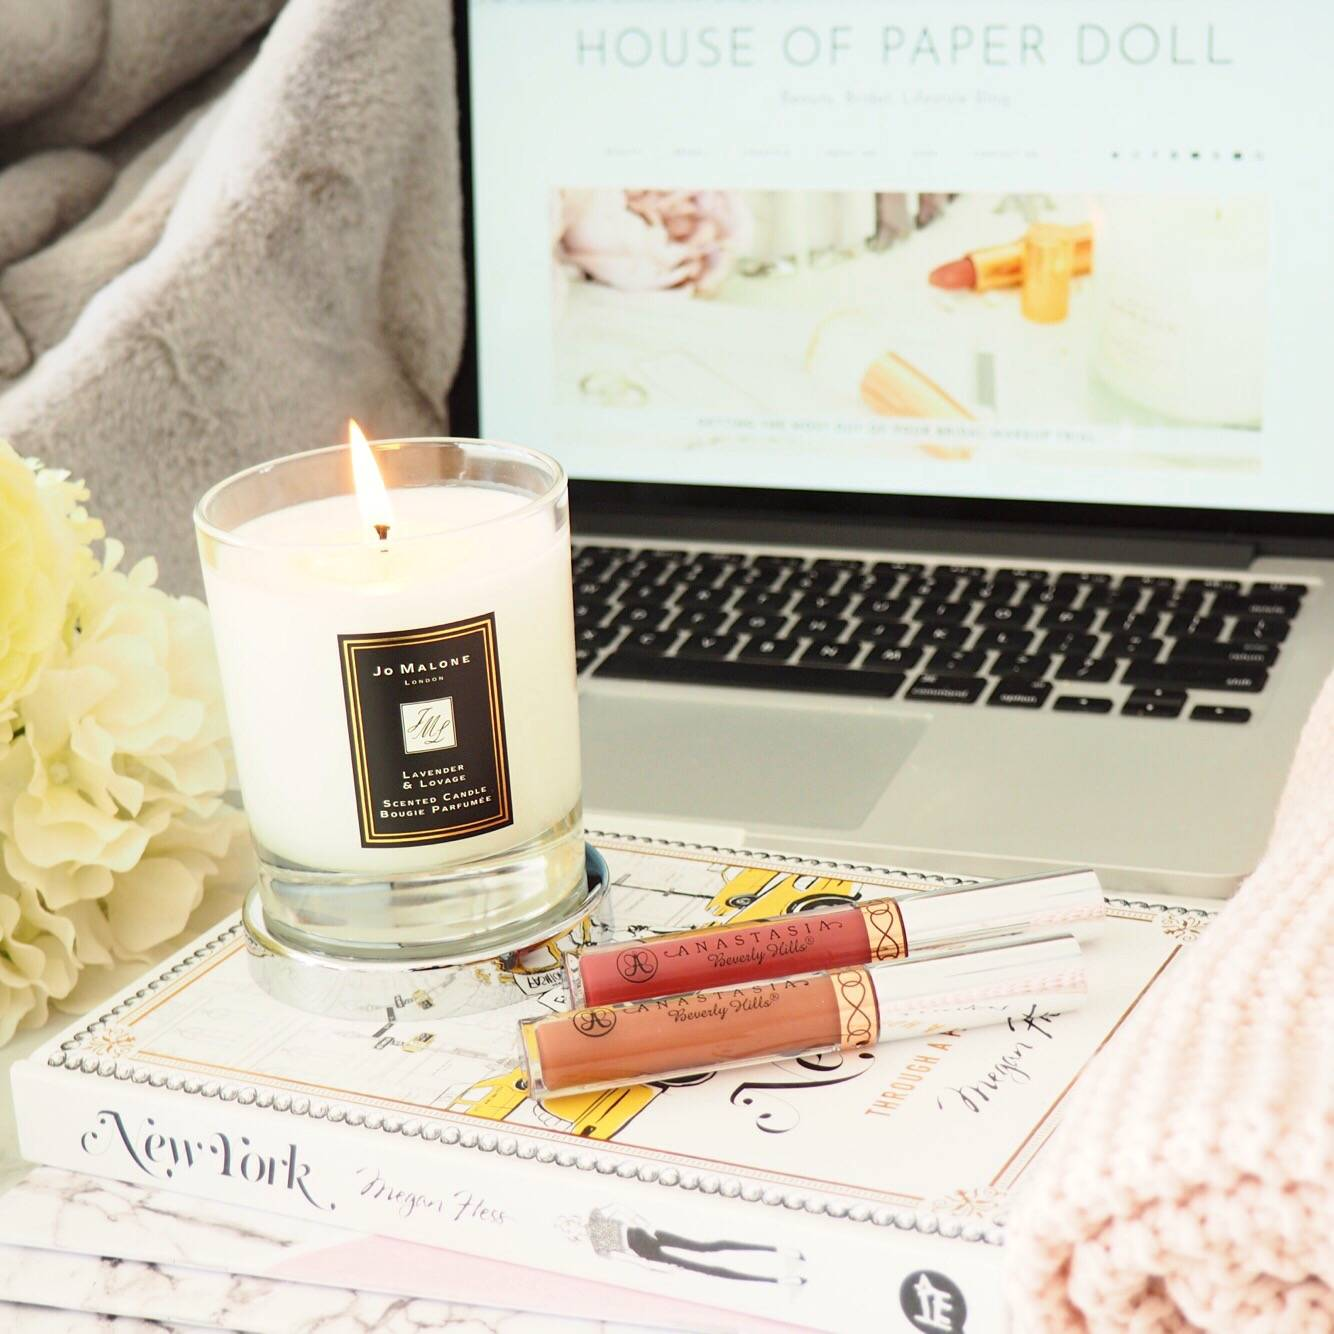 Jo Malone Lavender and Lovage Candle Review